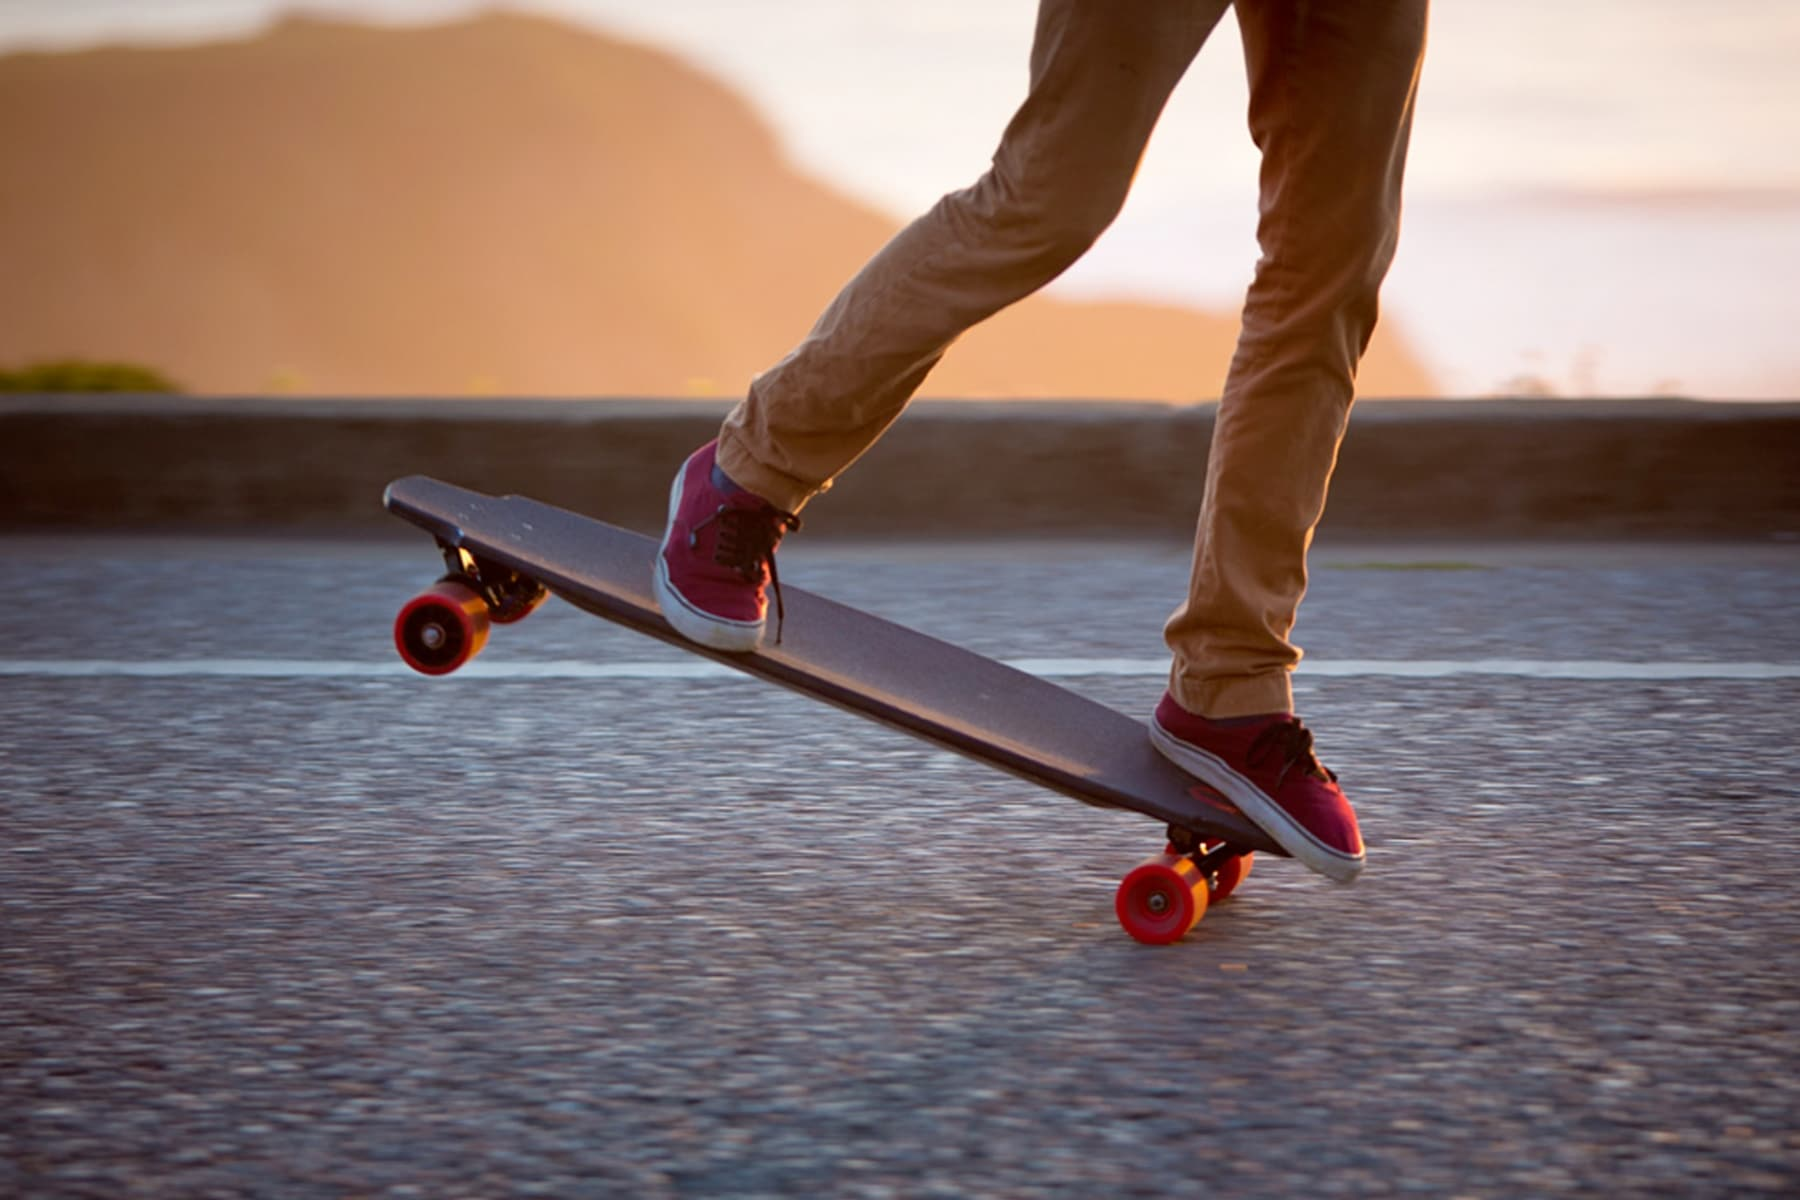 10 Most Popular Electric Skateboards for Teens [Buying Guide] 7